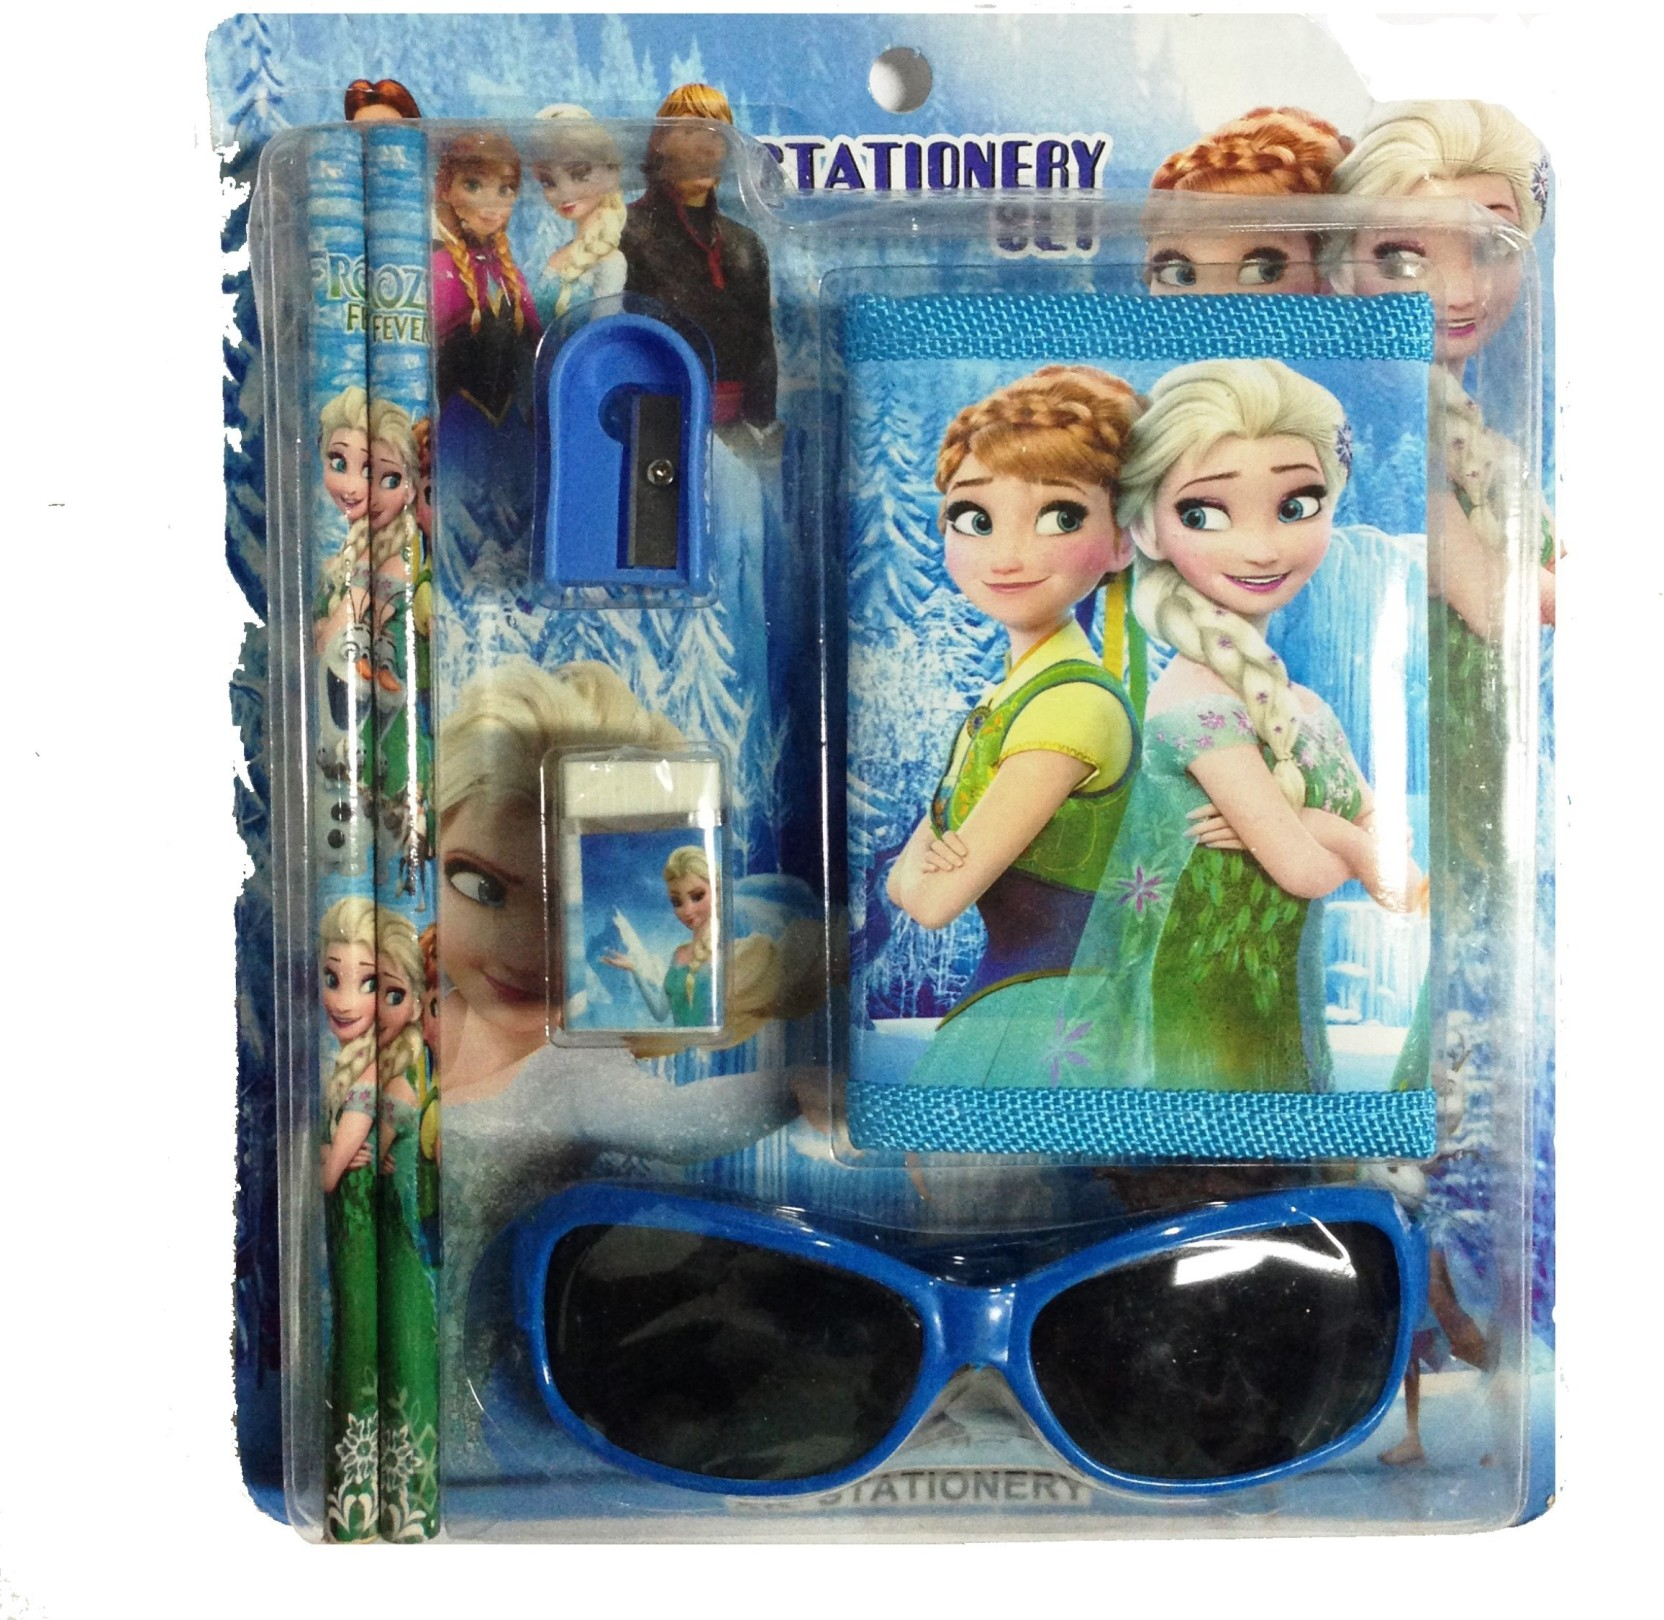 f42919f50fd Funcart Frozen Goggle   Wallet Stationery Set - Frozen Goggle ...